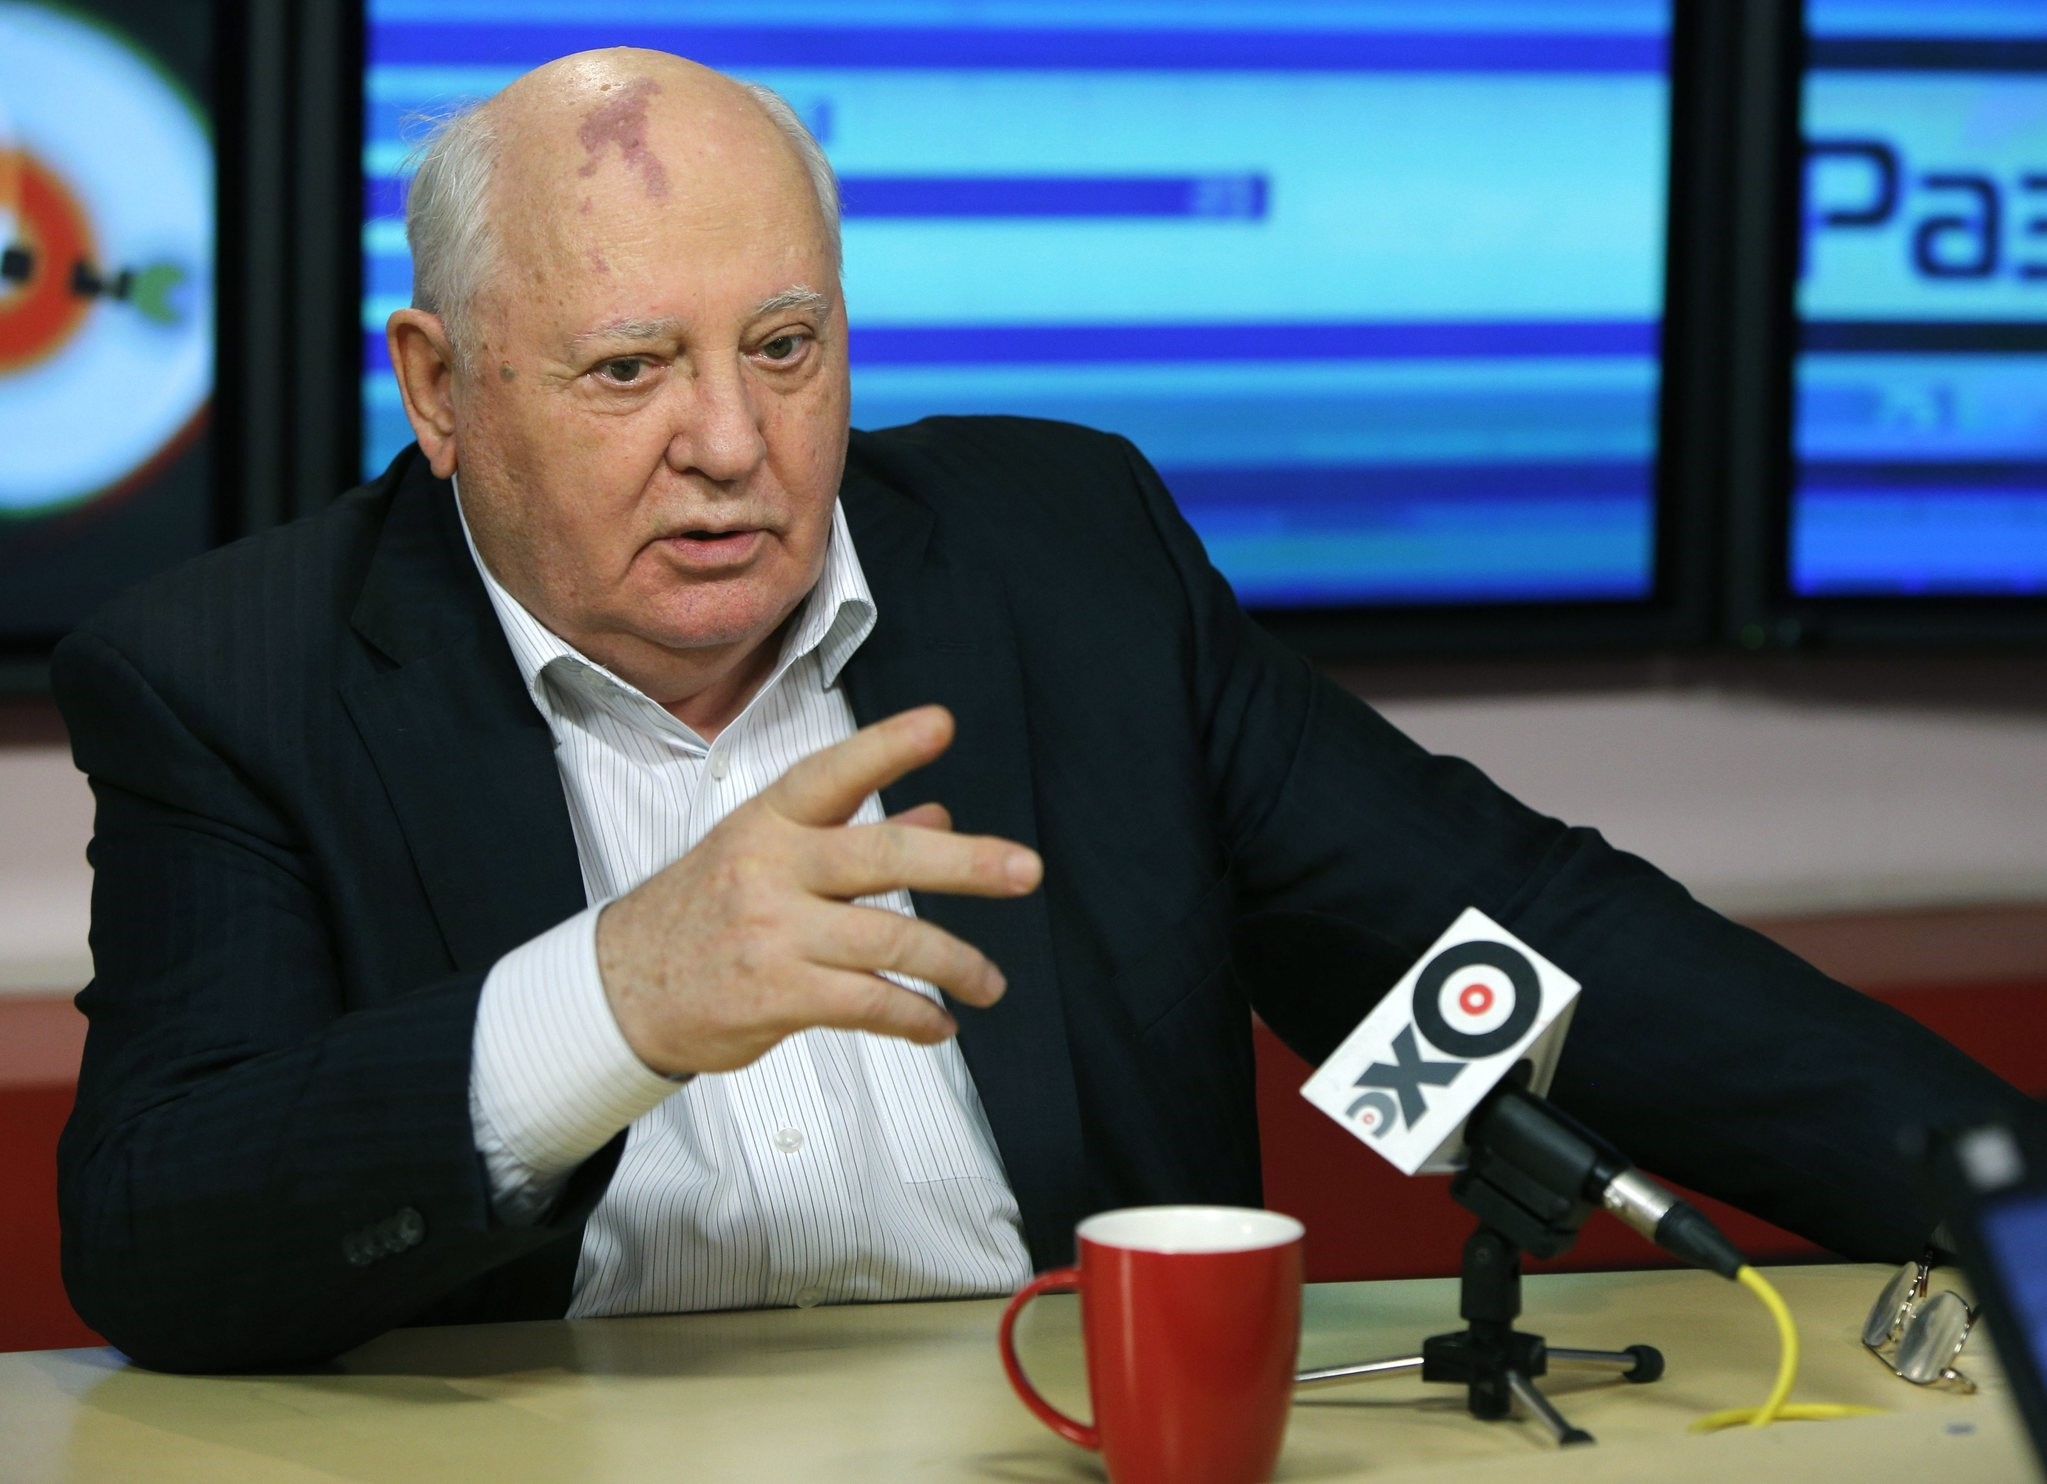 In this photo taken late Monday, Nov. 12, 2012, former President of the Soviet Union Mikhail Gorbachev speaks to journalists on Ekho Moskvy radio in Moscow, Russia.  (AP Photo)